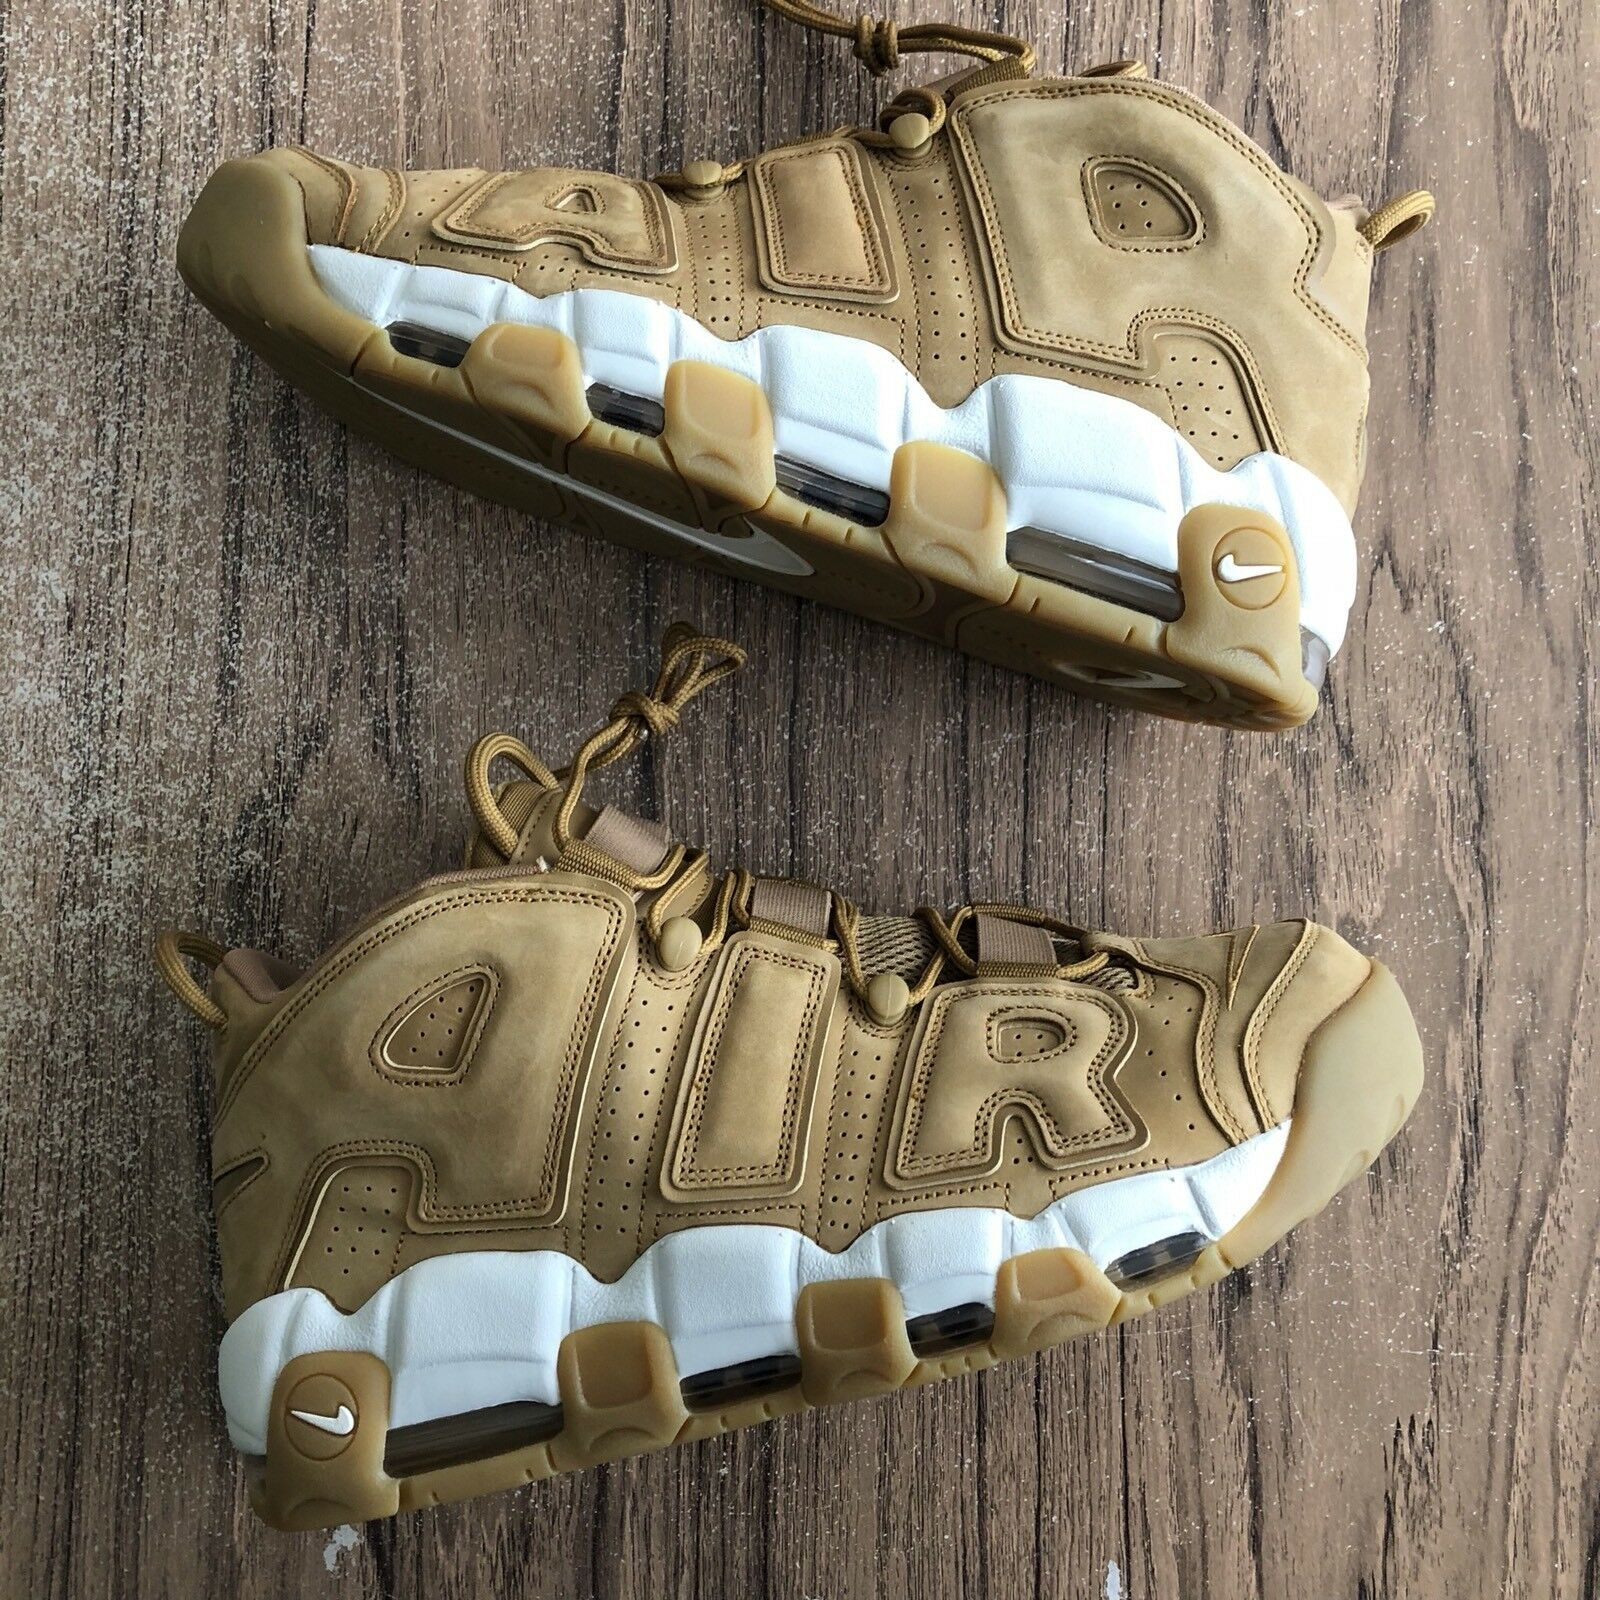 Nike Air More Uptempo 96 Prm Flax Wheat AA4060-200 Mens Size 12.5 NEW